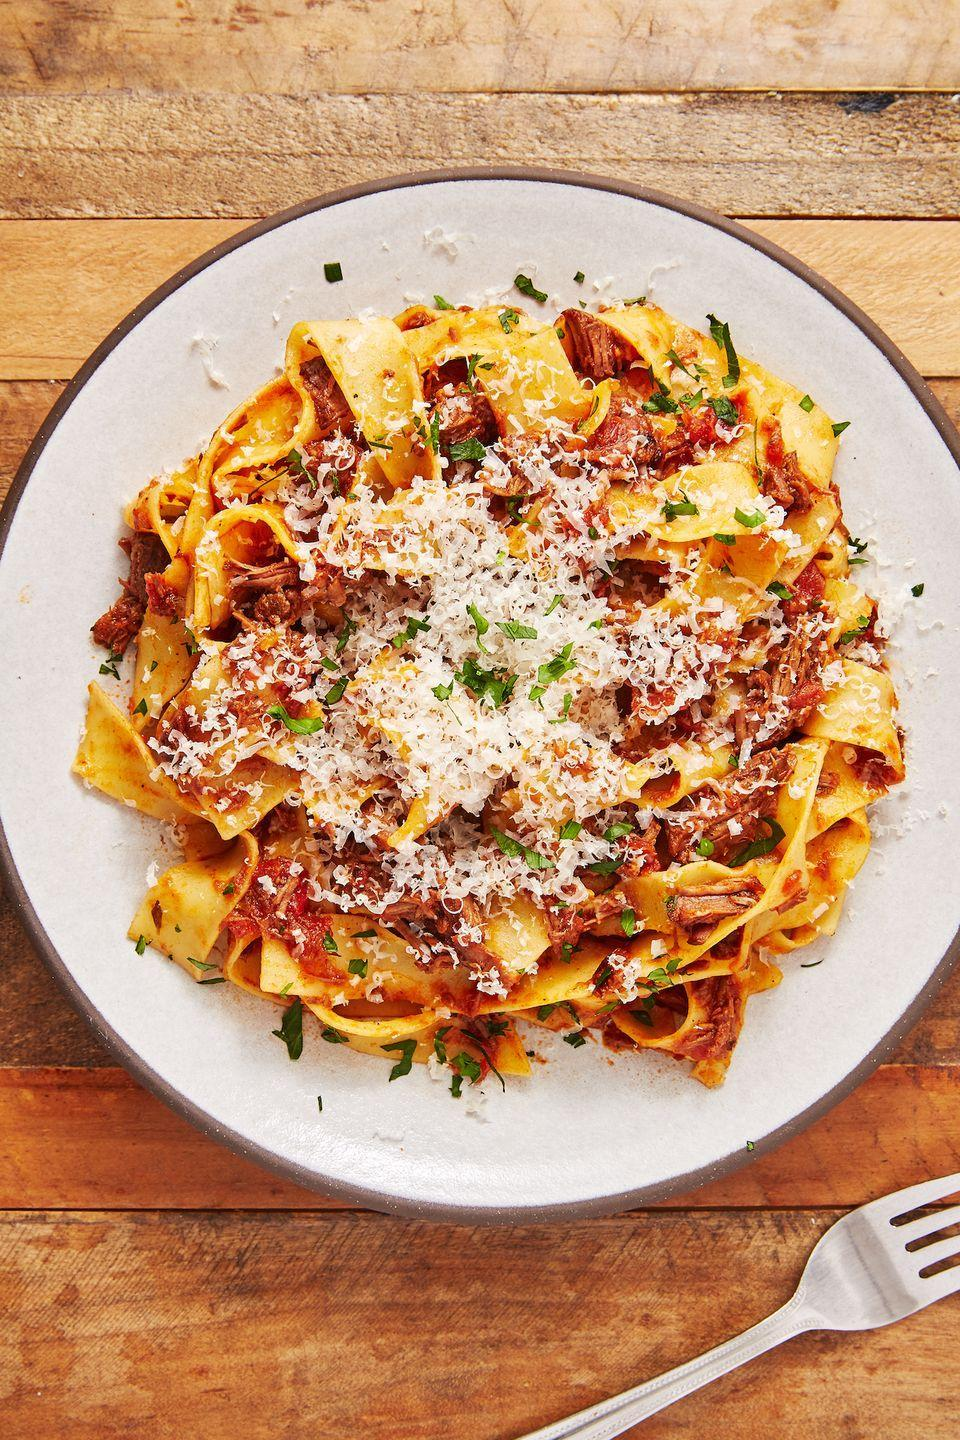 "<p>The best sauce you'll ever put over pasta and it's so easy to make. </p><p>Get the recipe from <a href=""https://www.delish.com/cooking/recipe-ideas/a28848480/beef-ragu-recipe/"" rel=""nofollow noopener"" target=""_blank"" data-ylk=""slk:Delish"" class=""link rapid-noclick-resp"">Delish</a>. </p>"